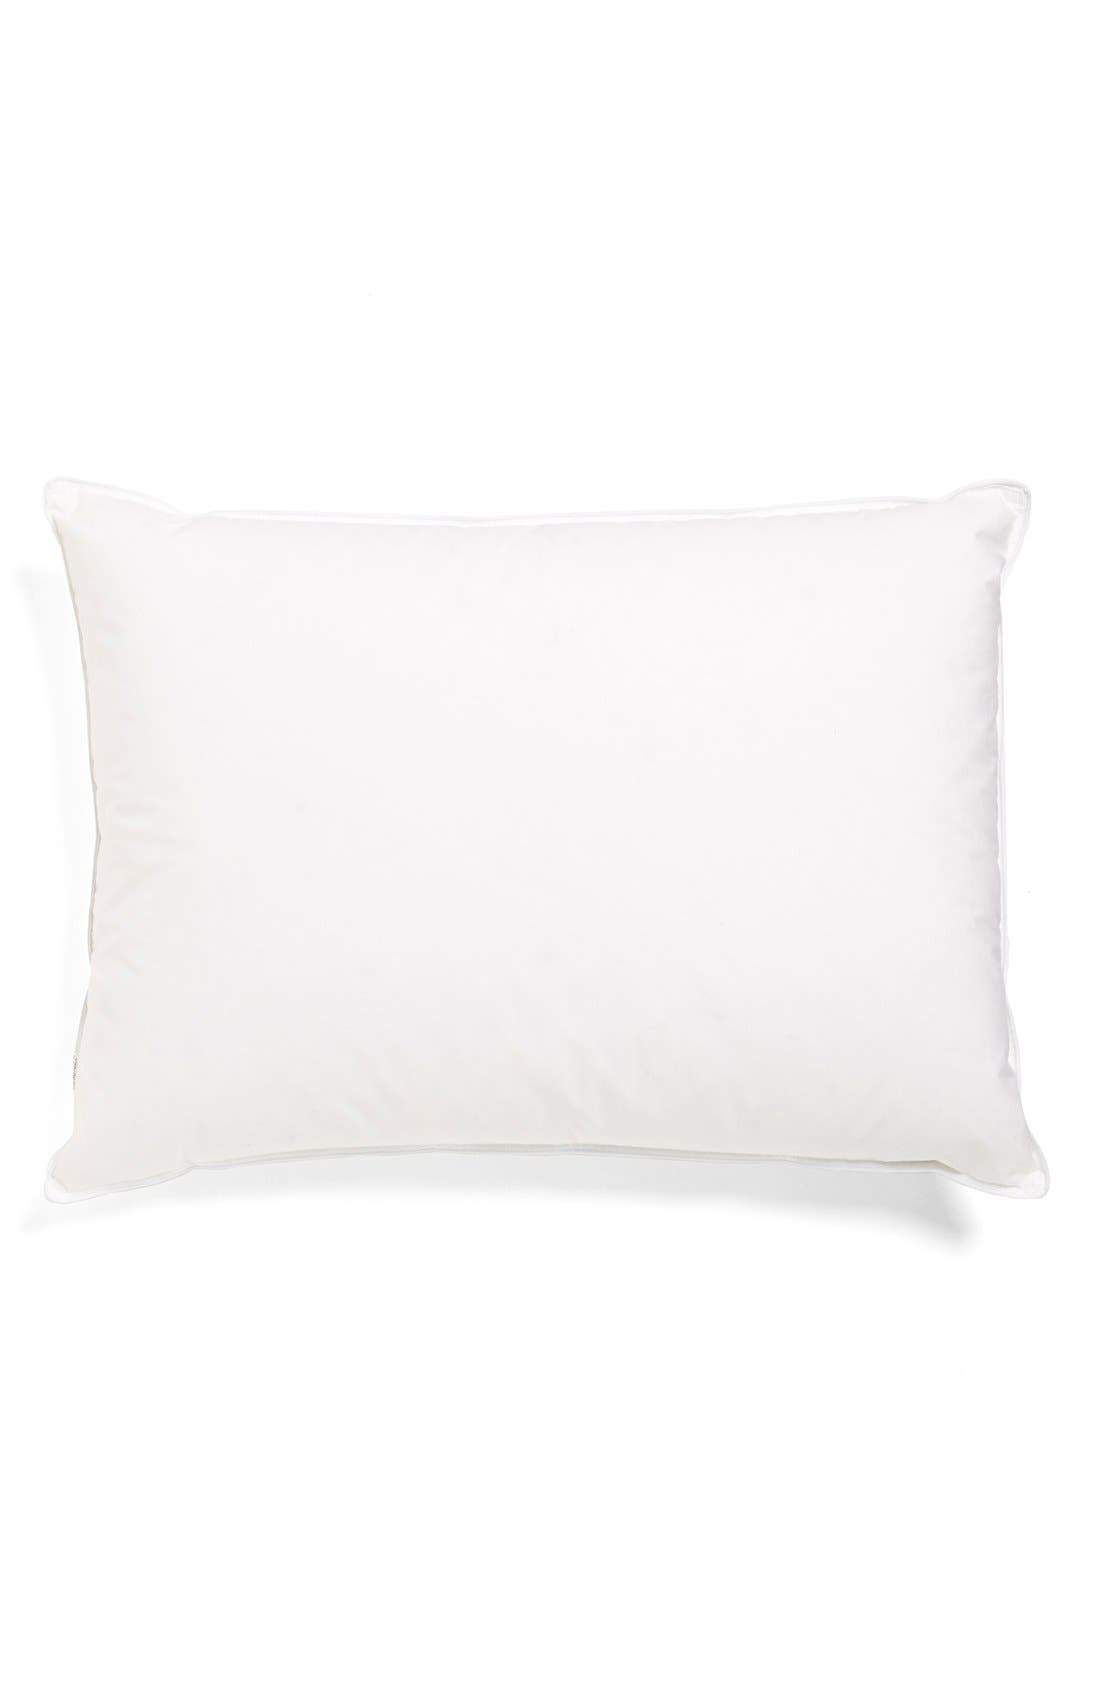 Alternate Image 1 Selected - Nordstrom at Home Luxe Down Pillow